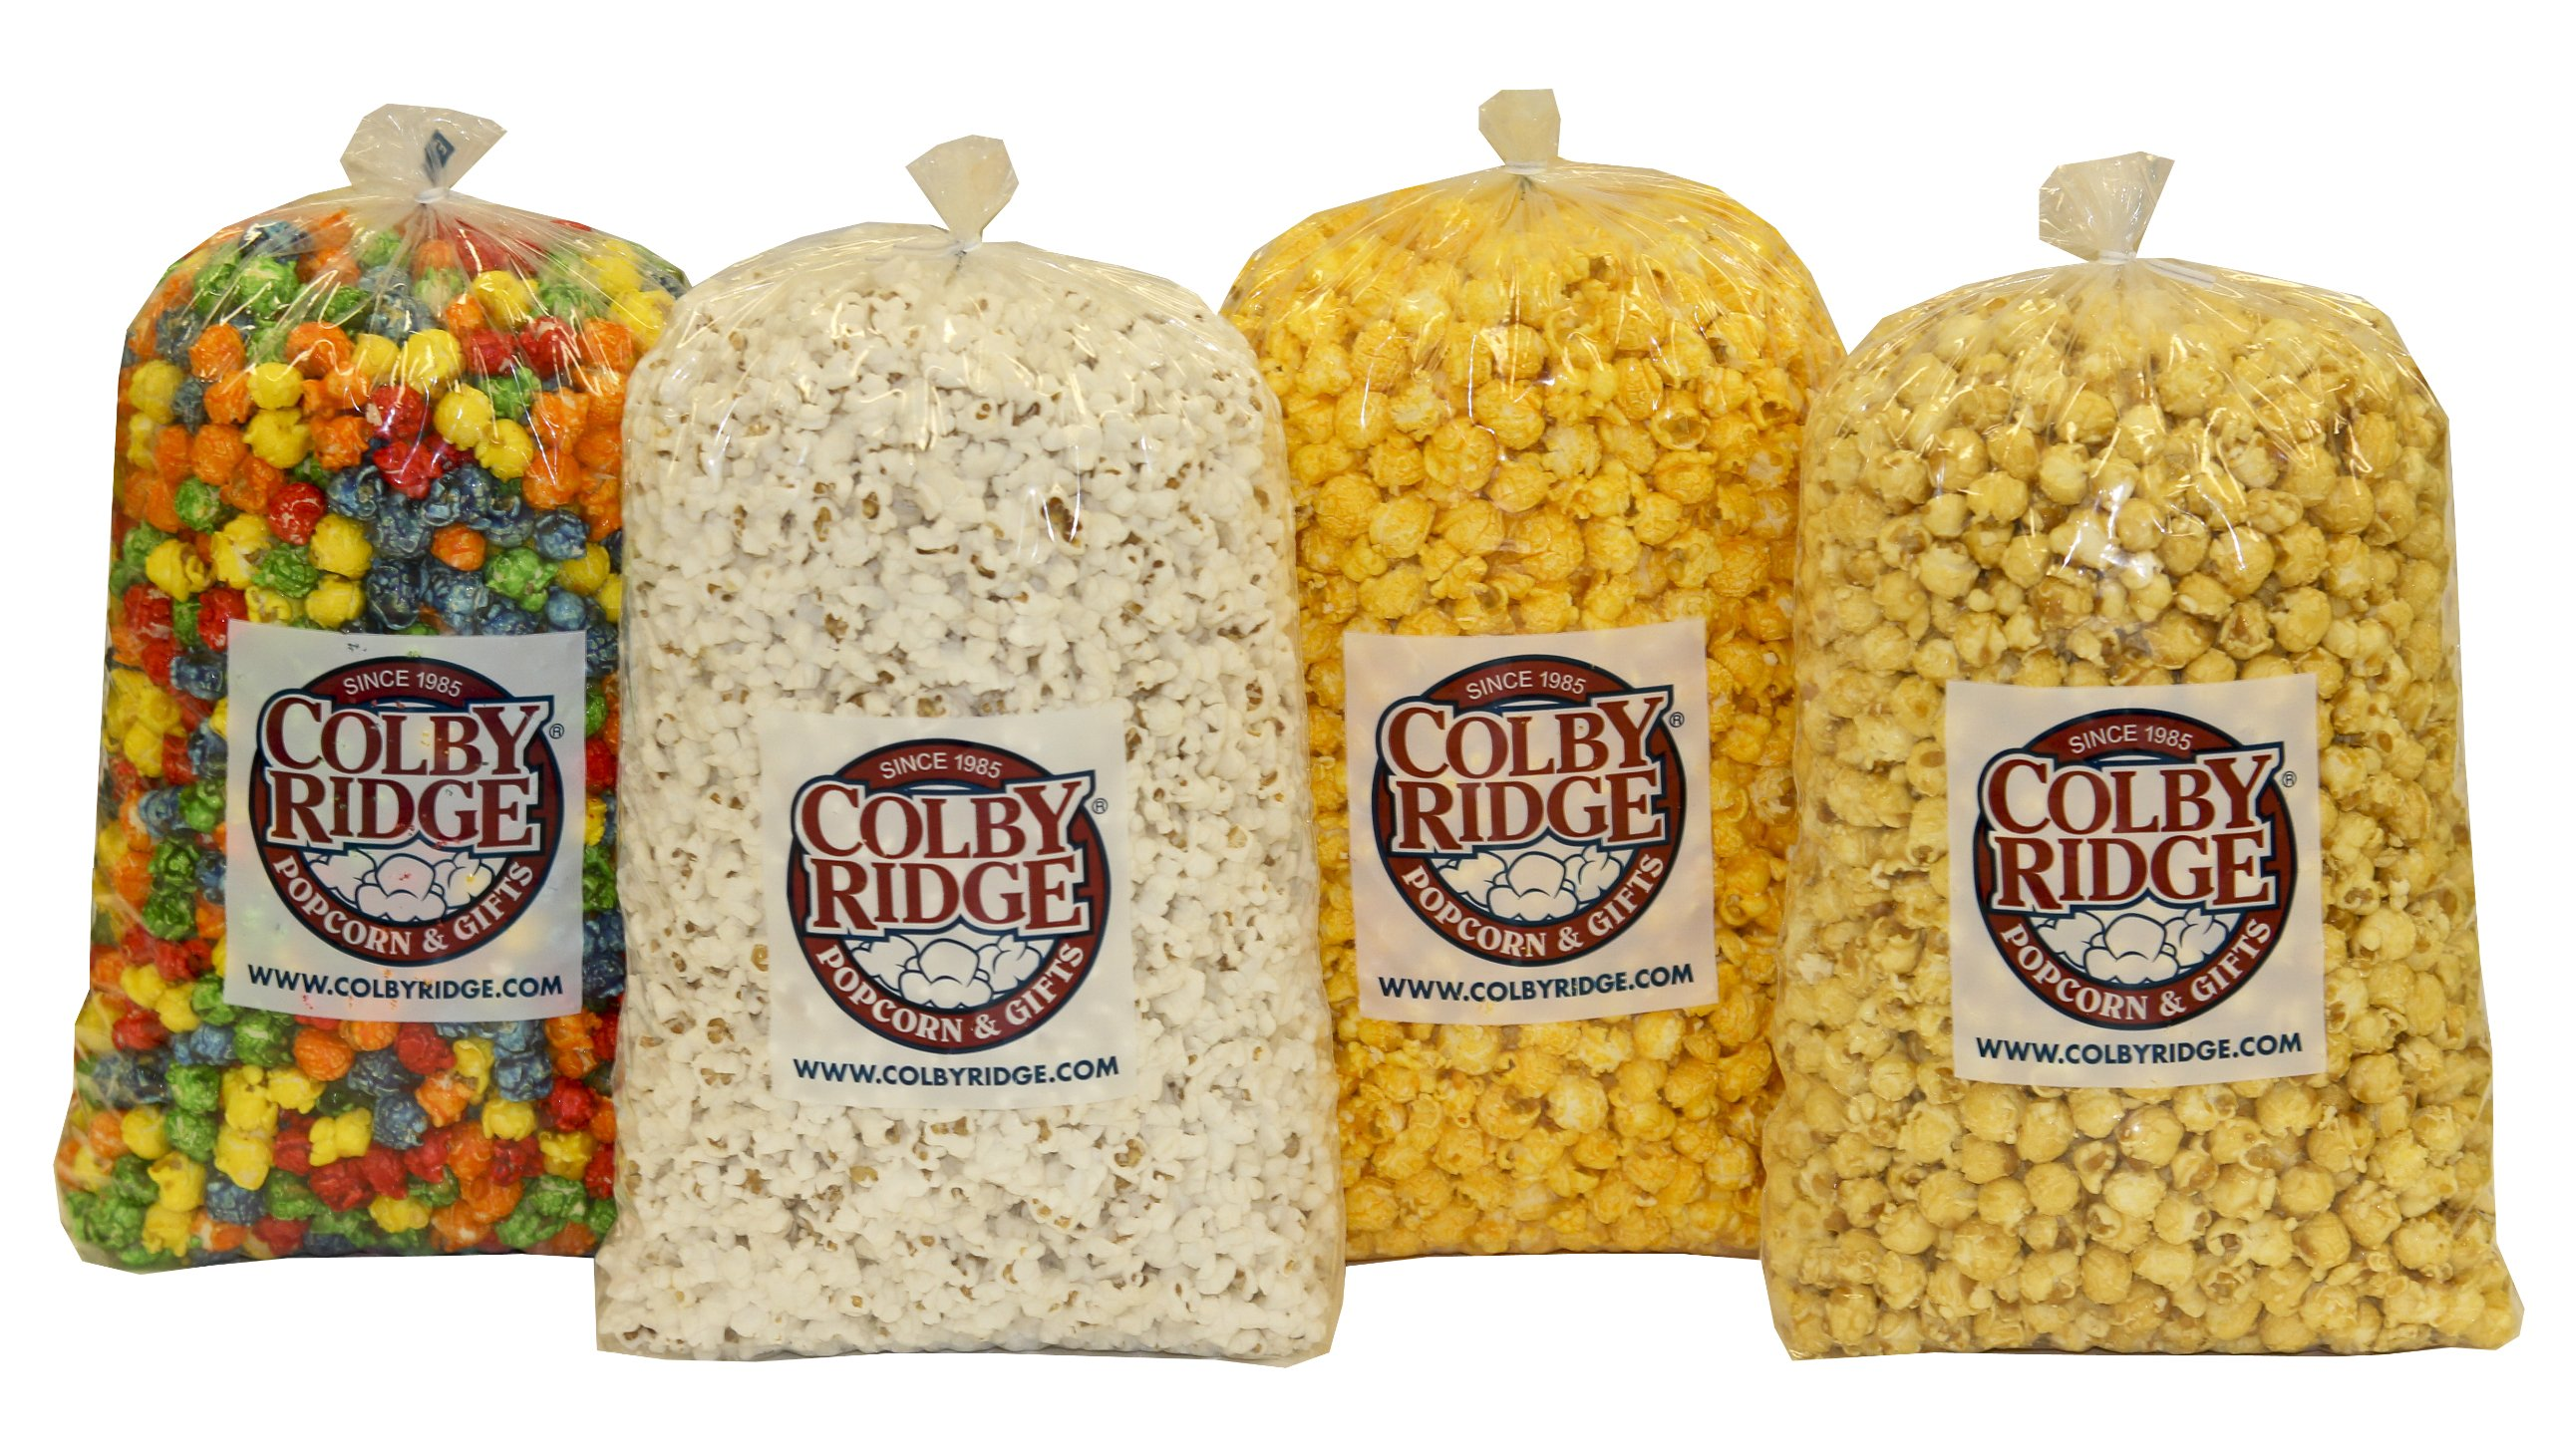 8 Gal. (128 Cups) Popcorn Sampler Colby Ridge Popped Popcorn by Colby Ridge